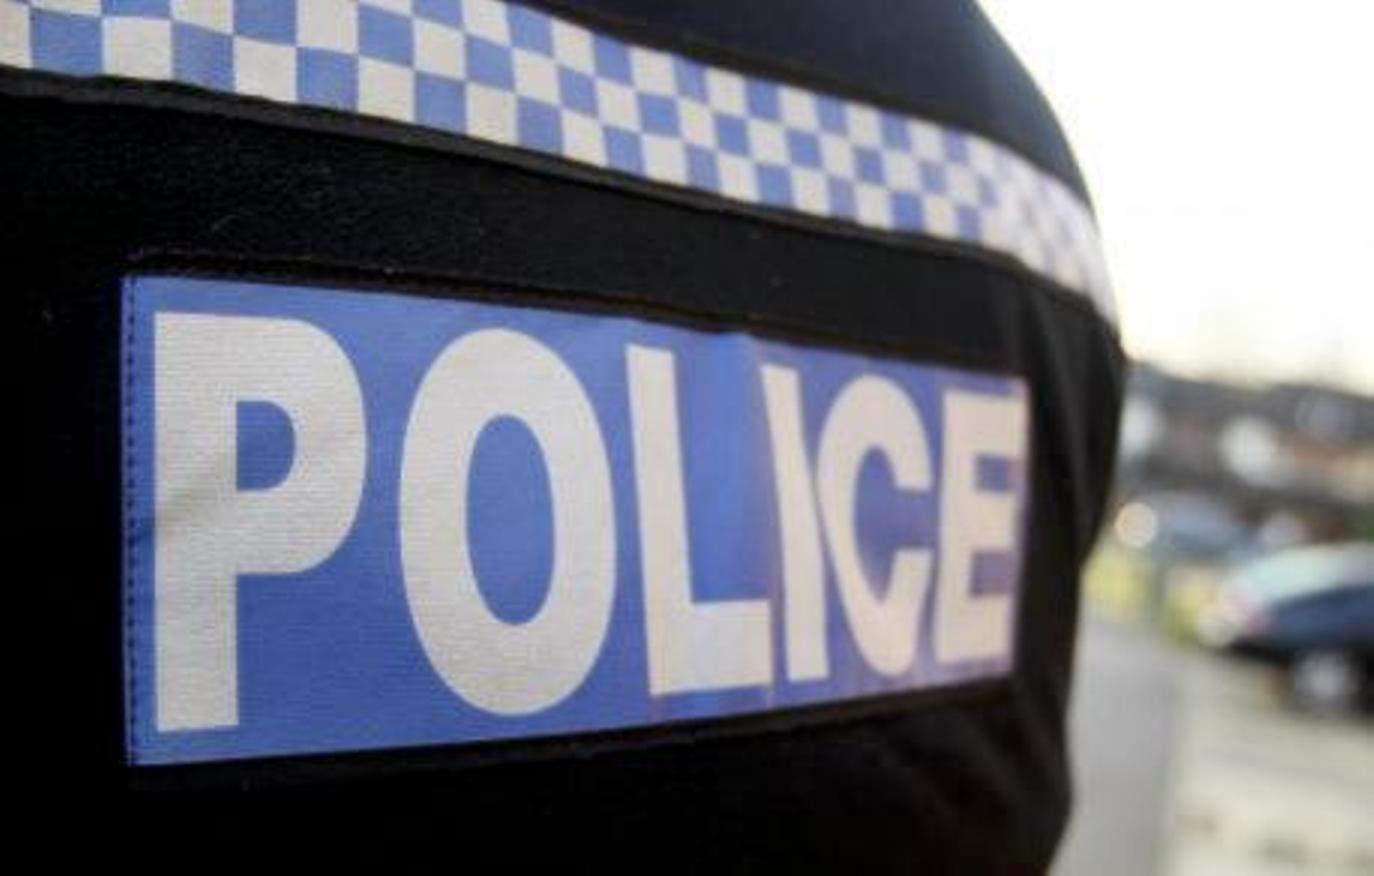 Essex Police praised for improvements to the way force deals with domestic abuse cases